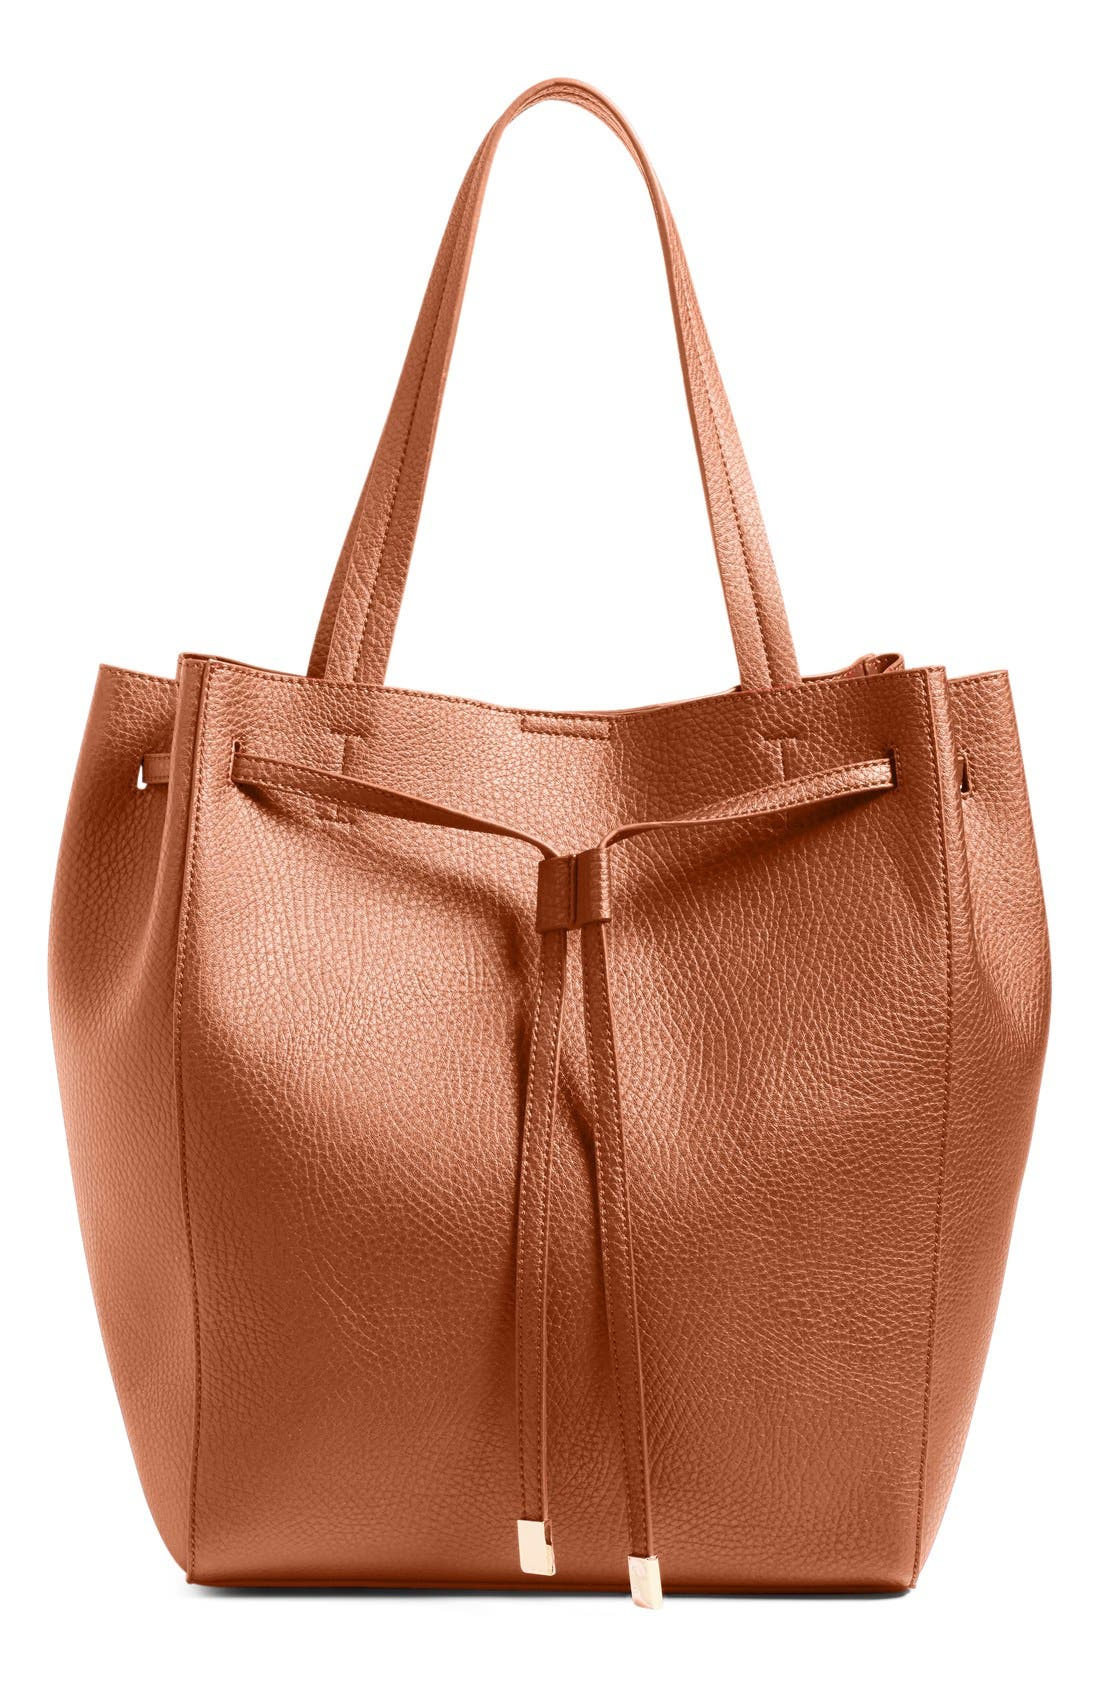 Alternate Image 1 Selected - BP. Faux Leather Drawstring Tote